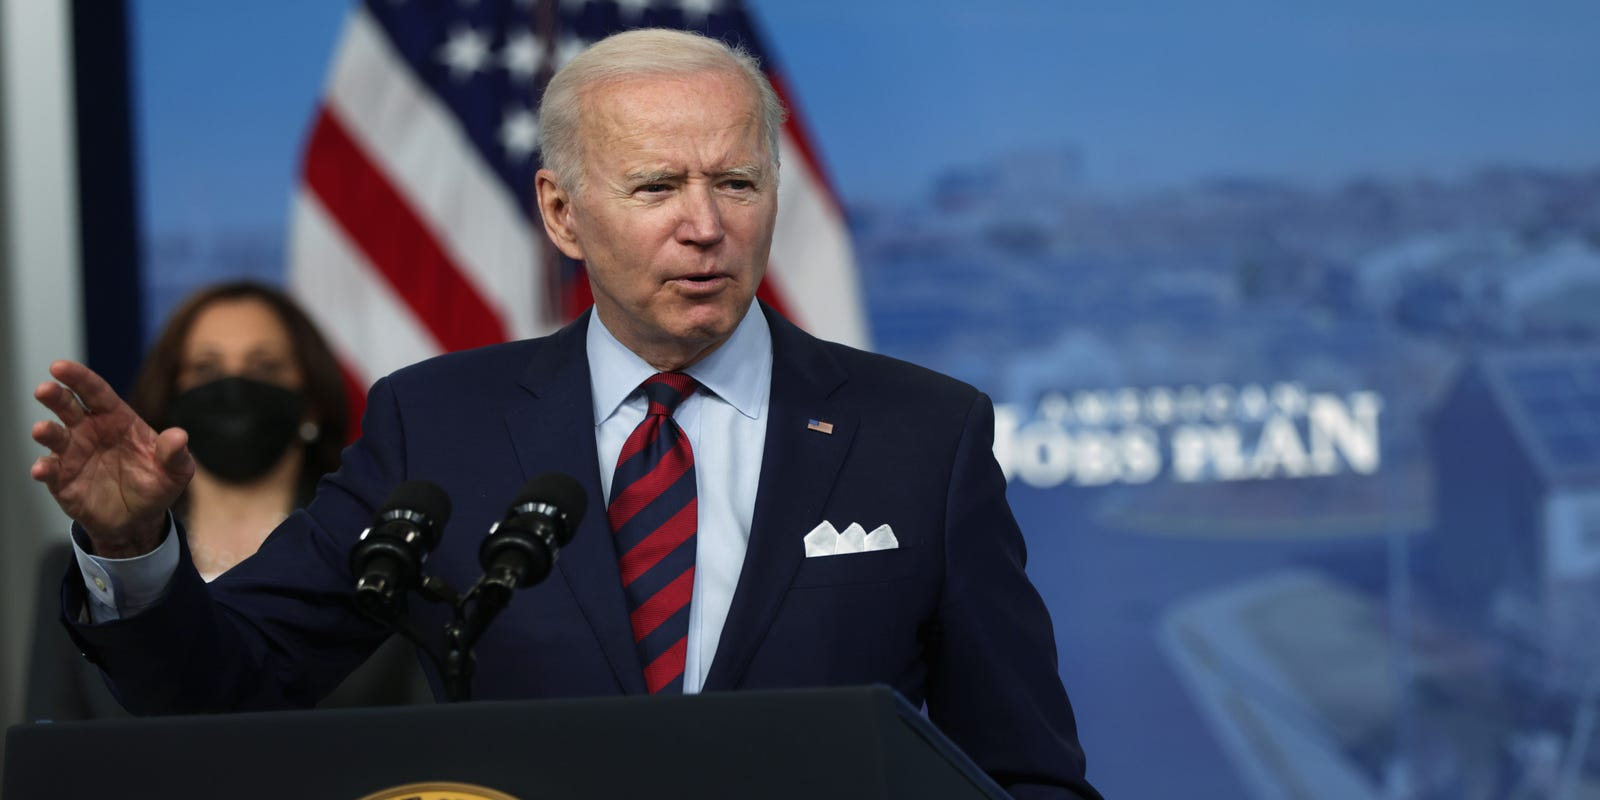 Biden to unveil 6 executive actions to curb gun violence, nominate a permanent ATF director - USA TODAY